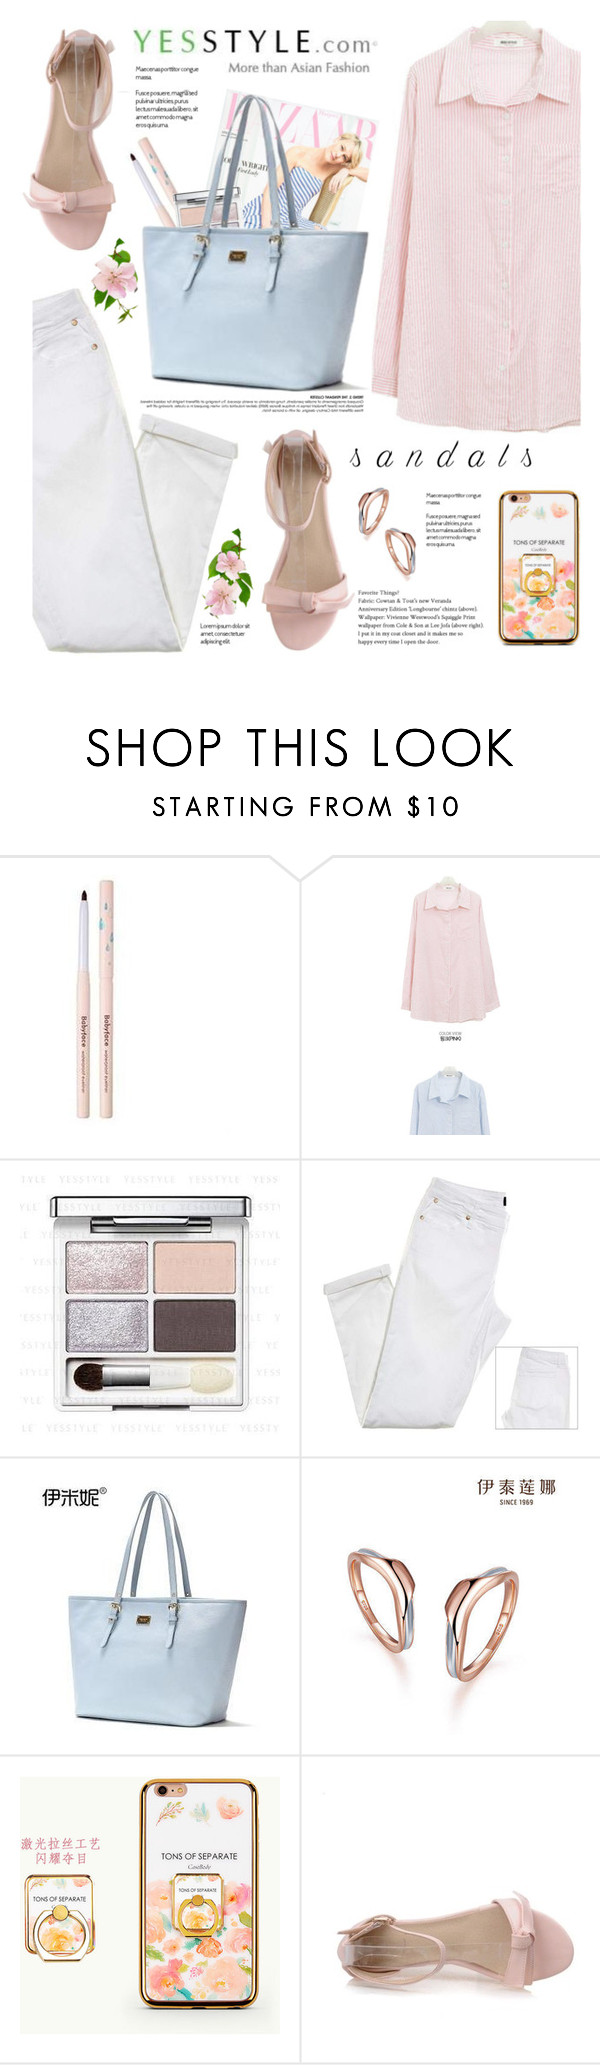 """""""YesStyle Polyvore Group """" Show us your YesStyle """""""" by yexyka ❤ liked on Polyvore featuring Emini House, Italina and summersandals"""